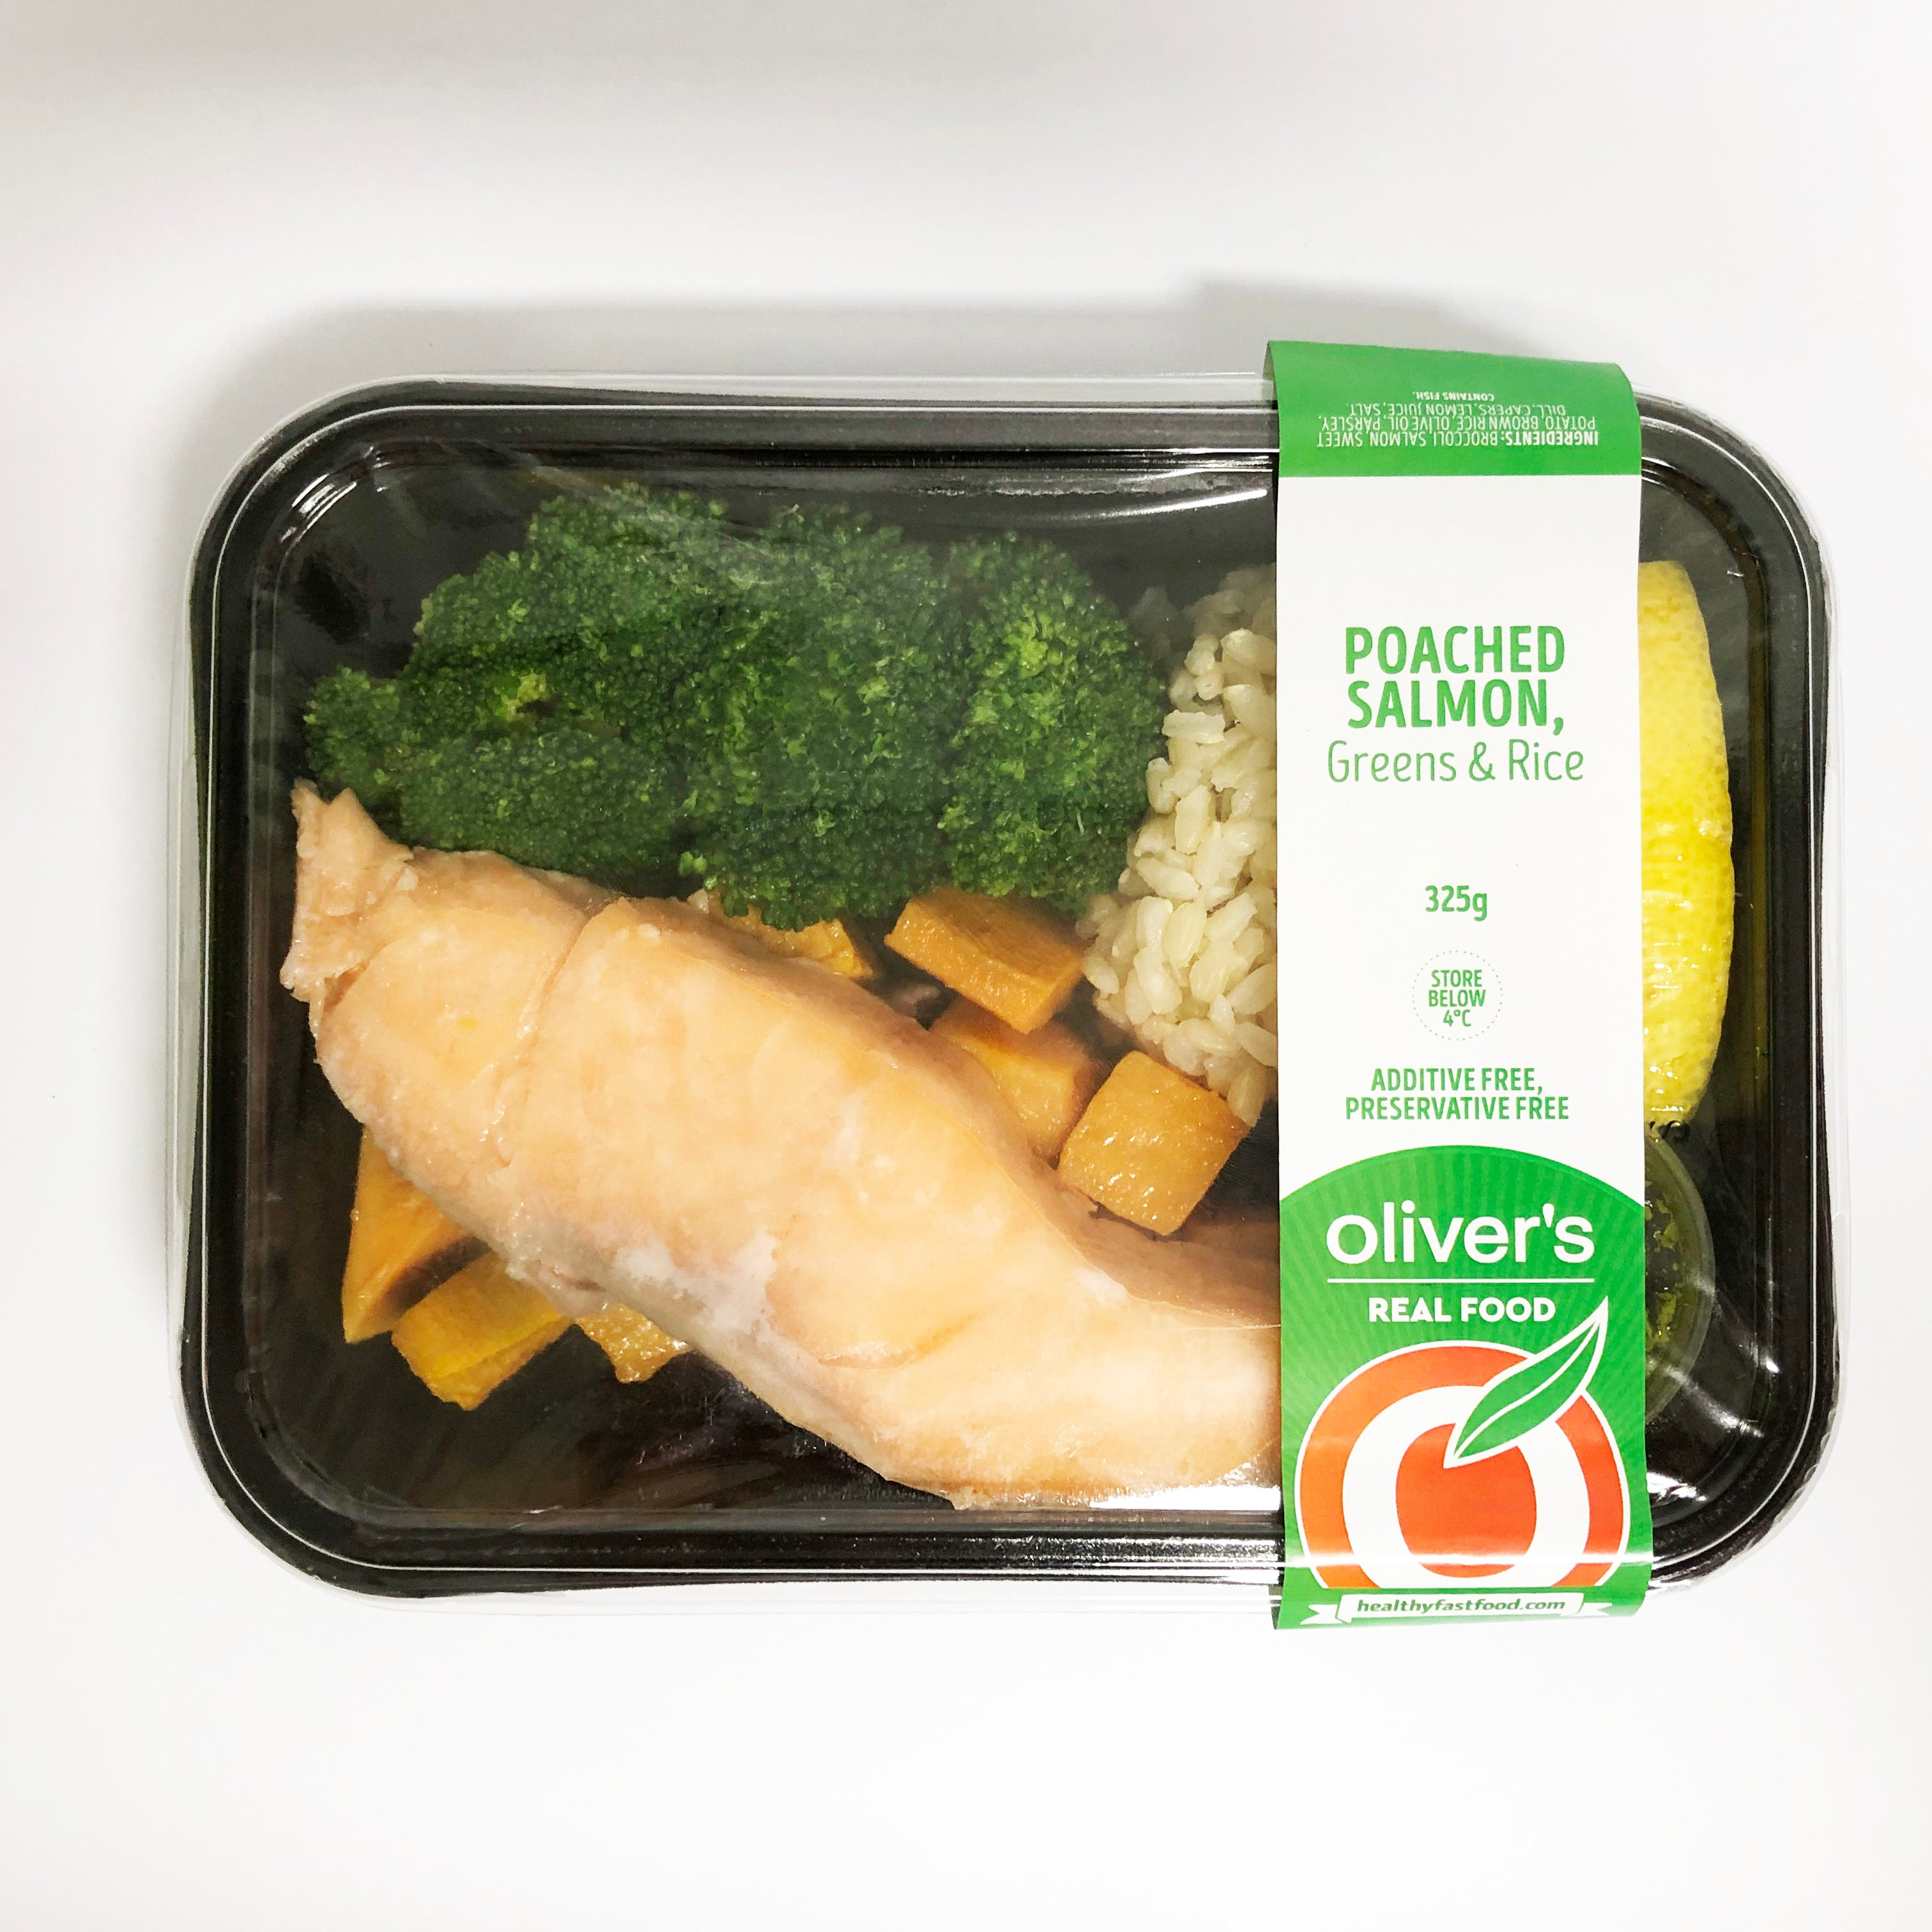 Poached Salmon Greens + Rice 300g (1 Unit)